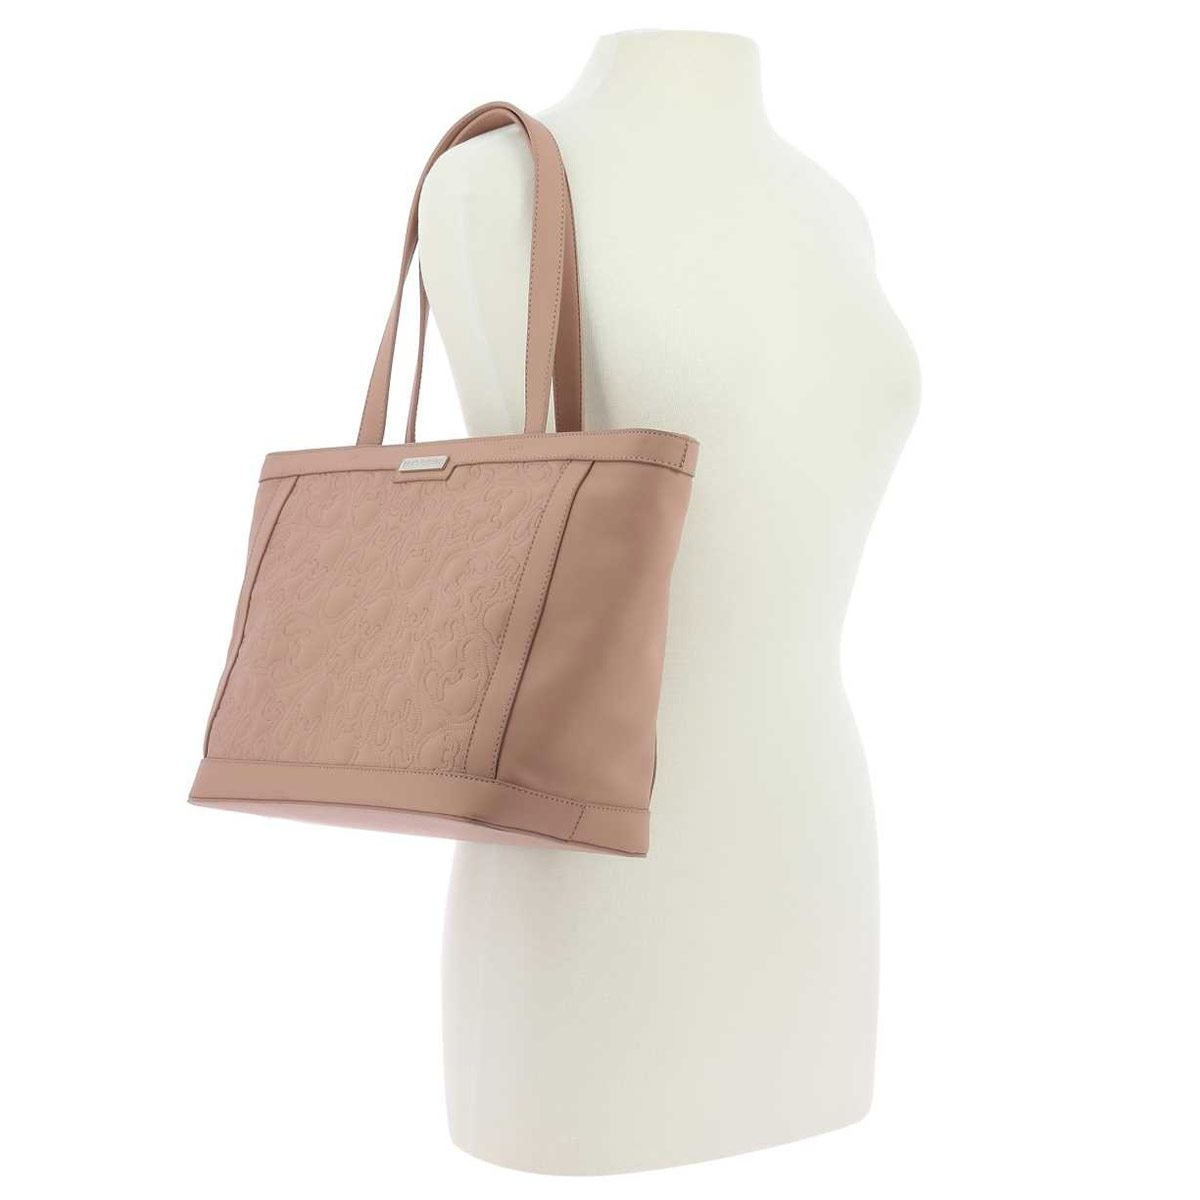 Bolso Hush puppies tote rosa